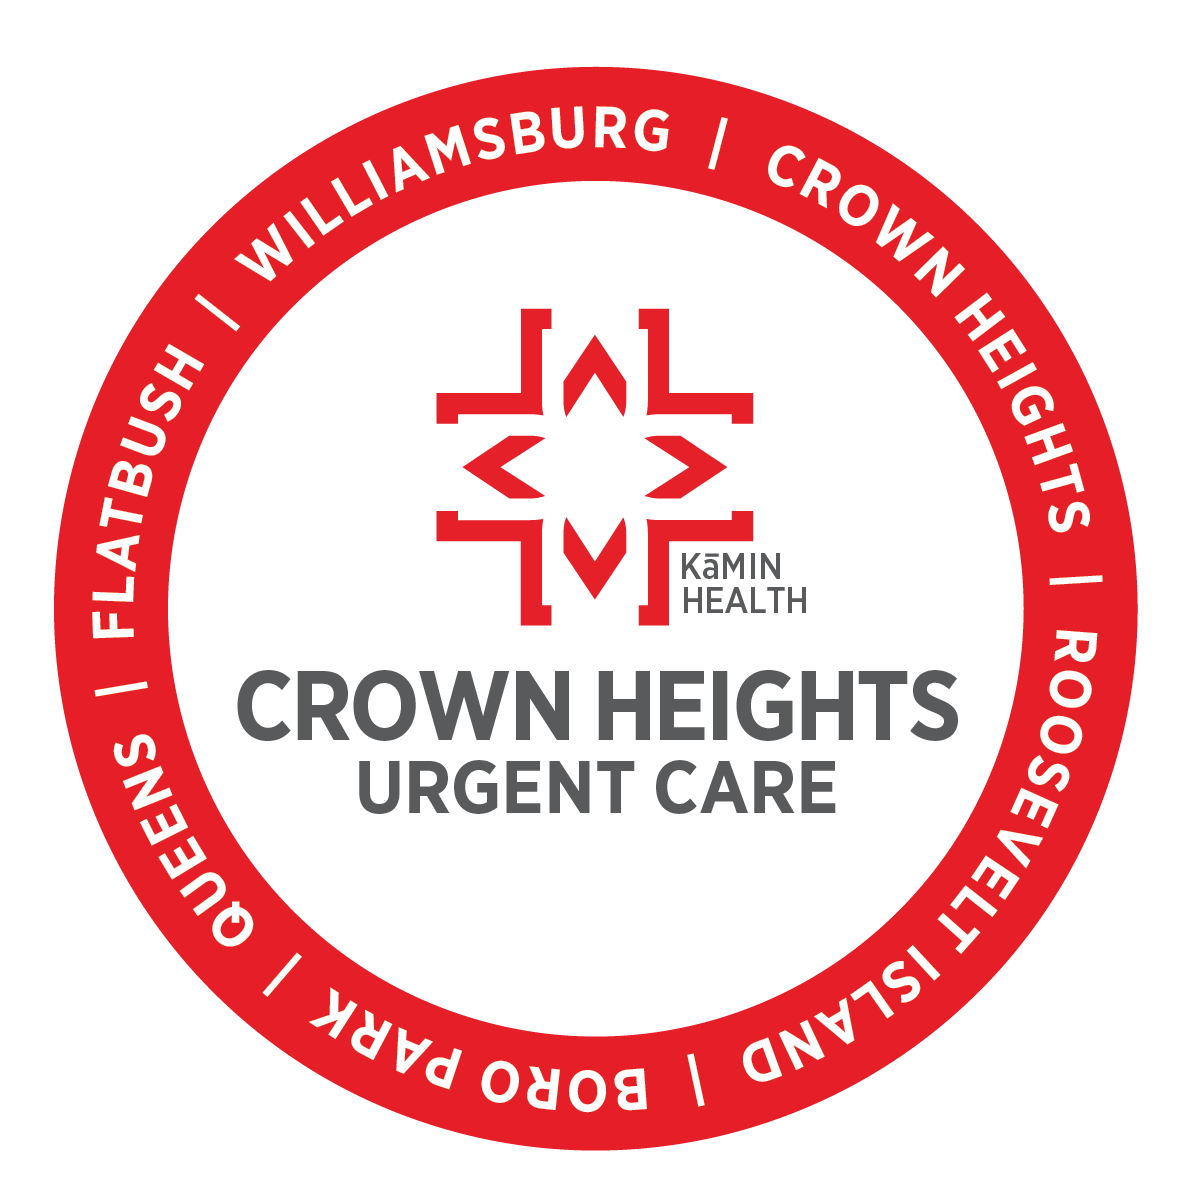 Kāmin Health - Crown Heights Urgent Care